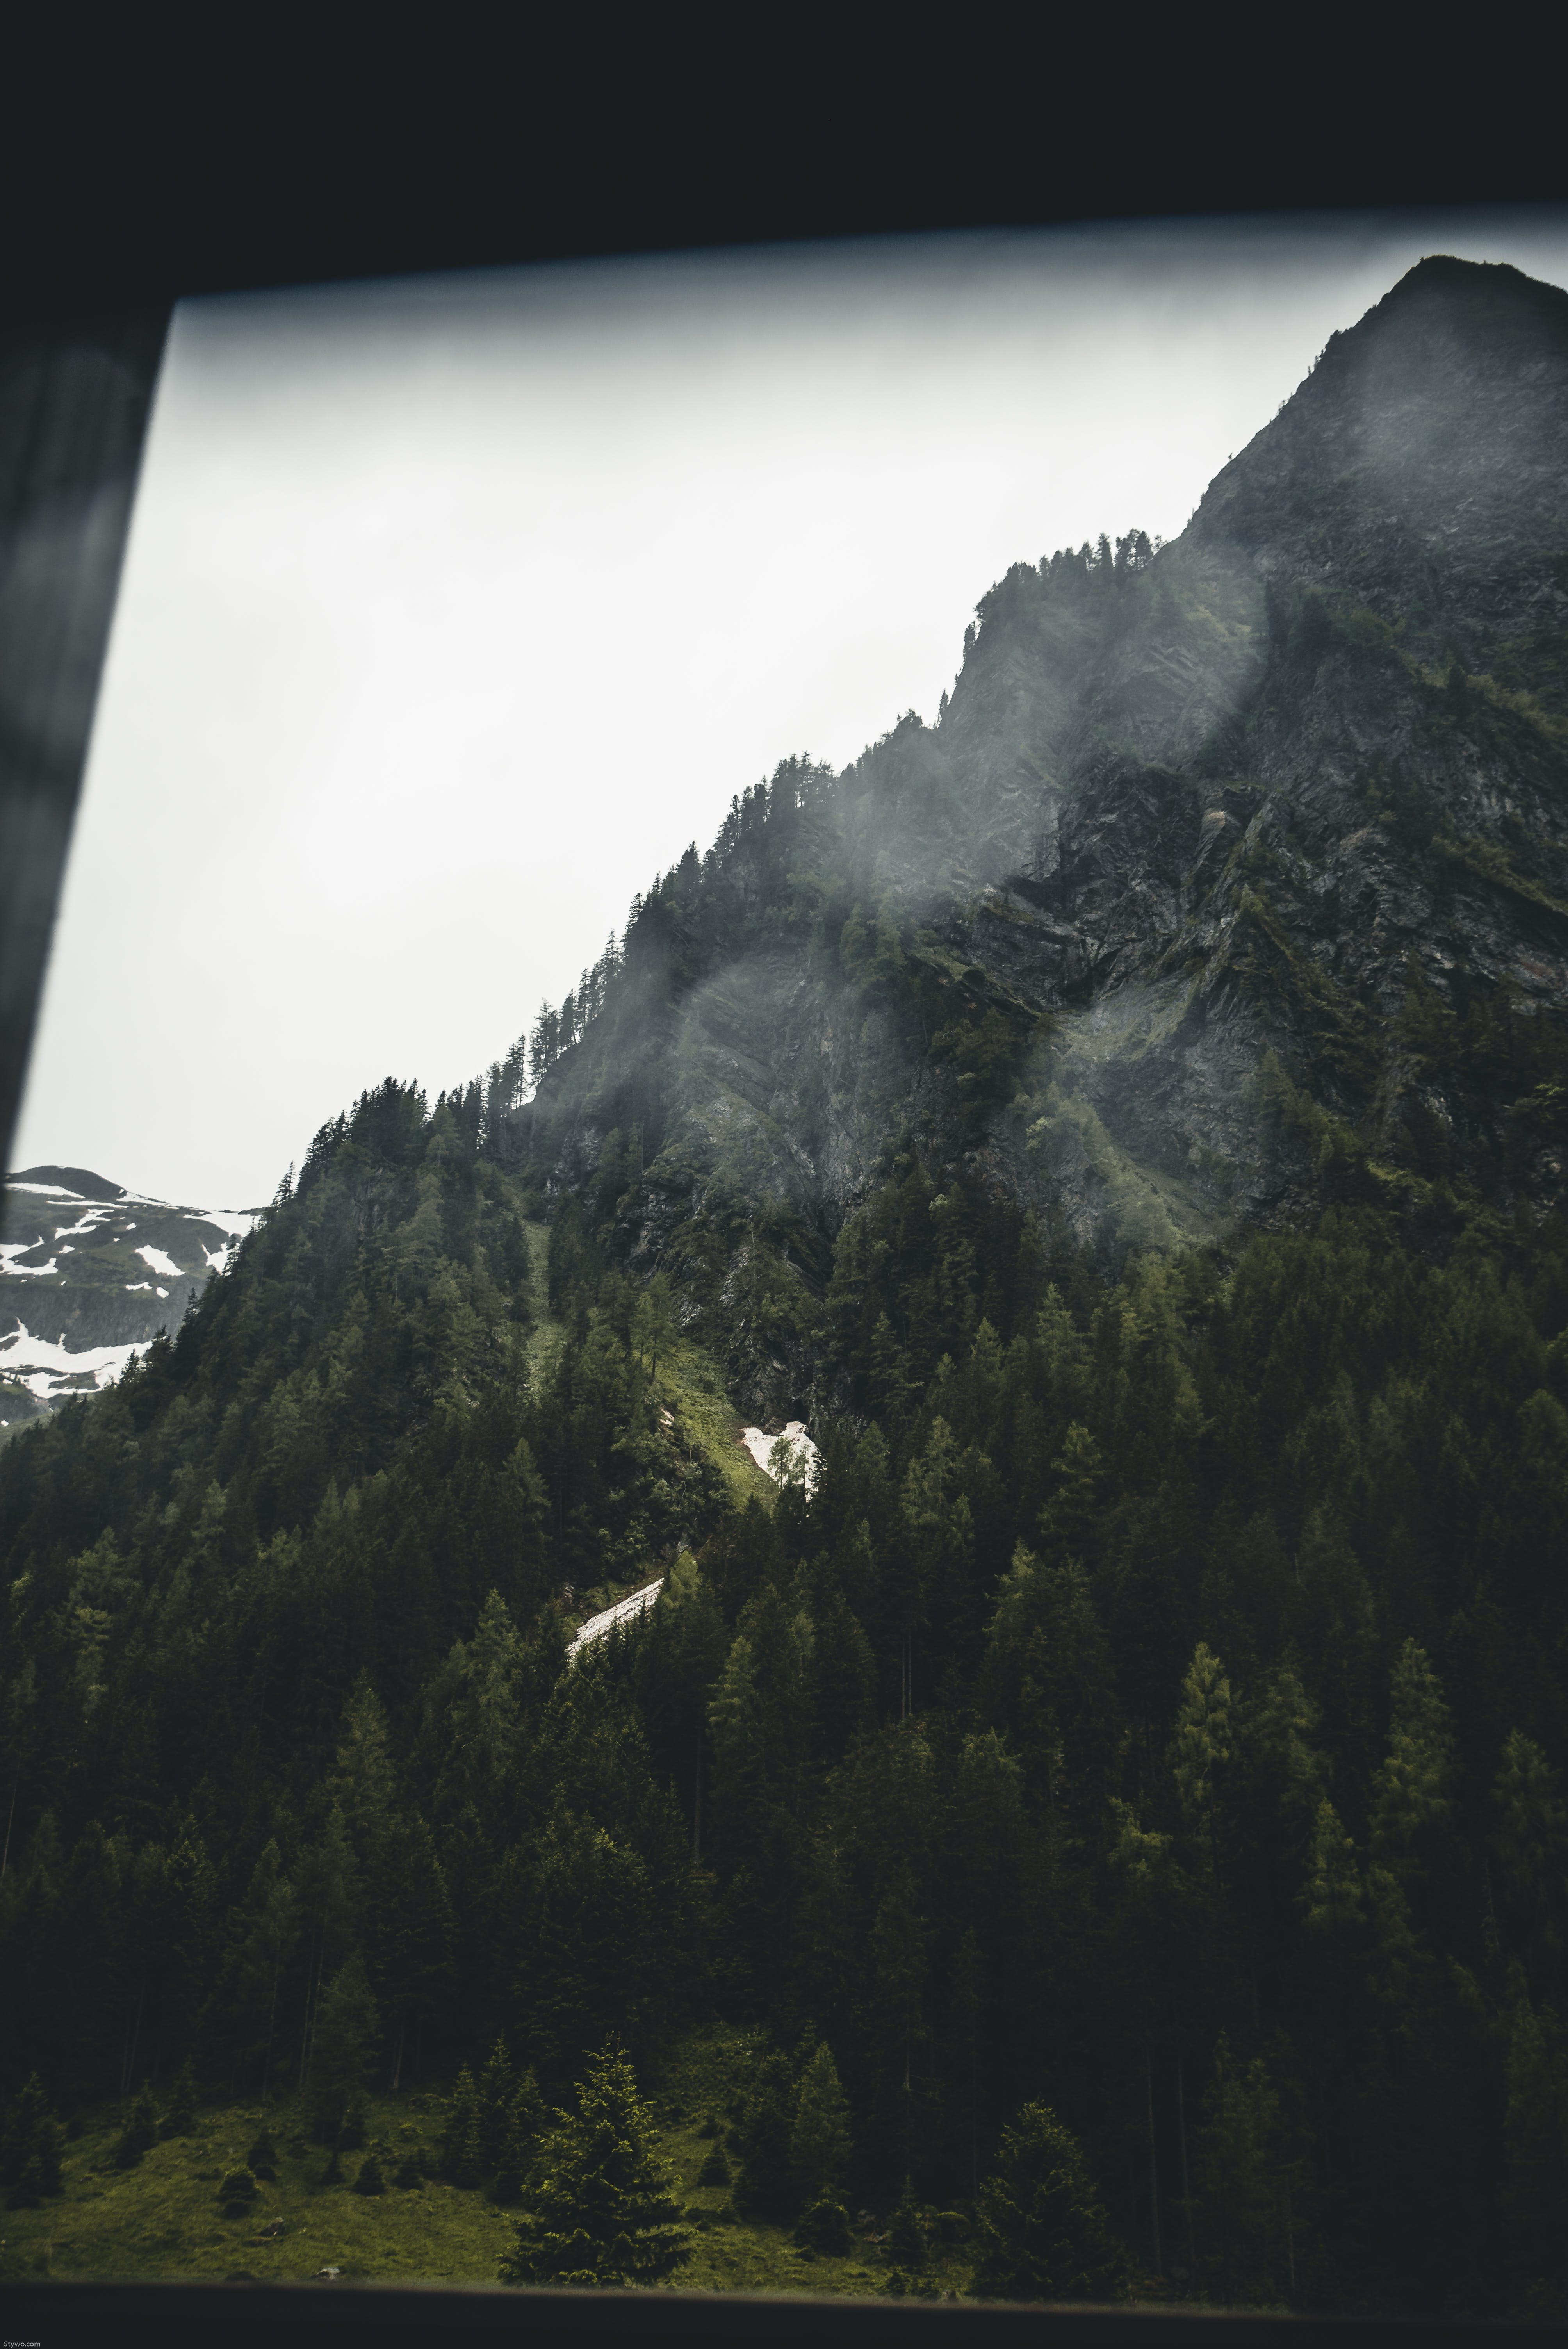 Mountain Ranges With Trees Screengrab